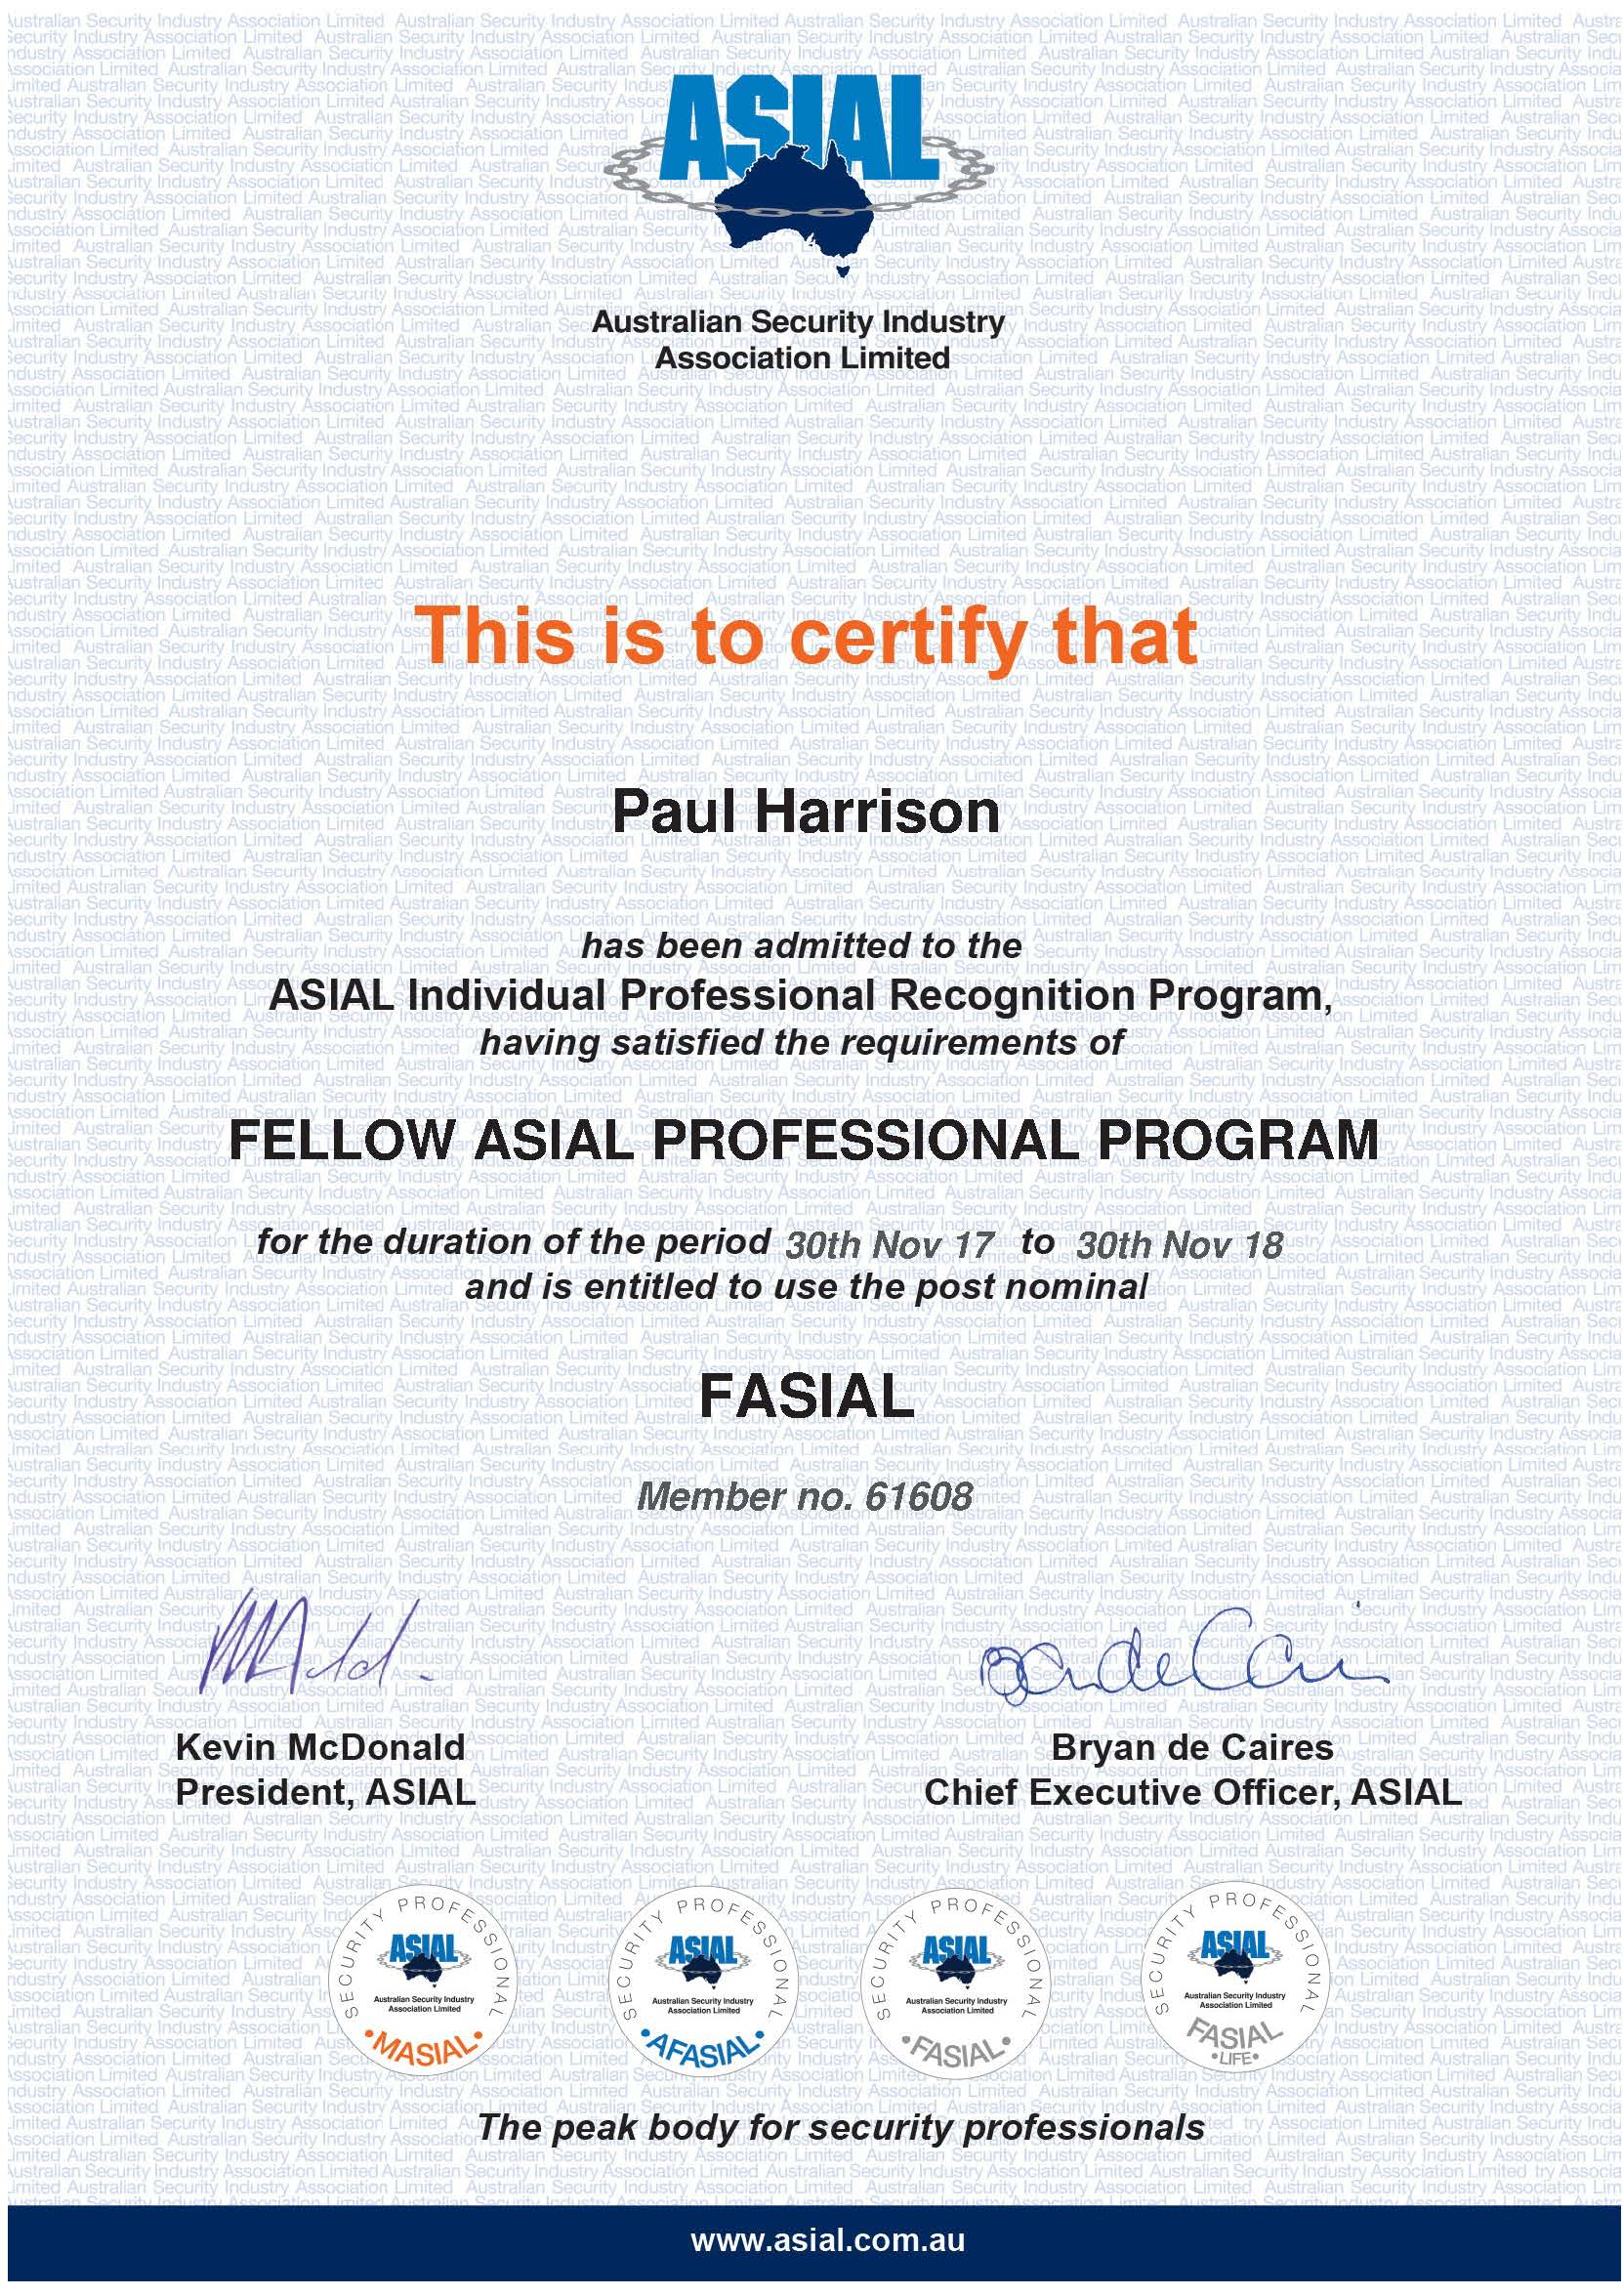 FASIAL Individual recognition certificate